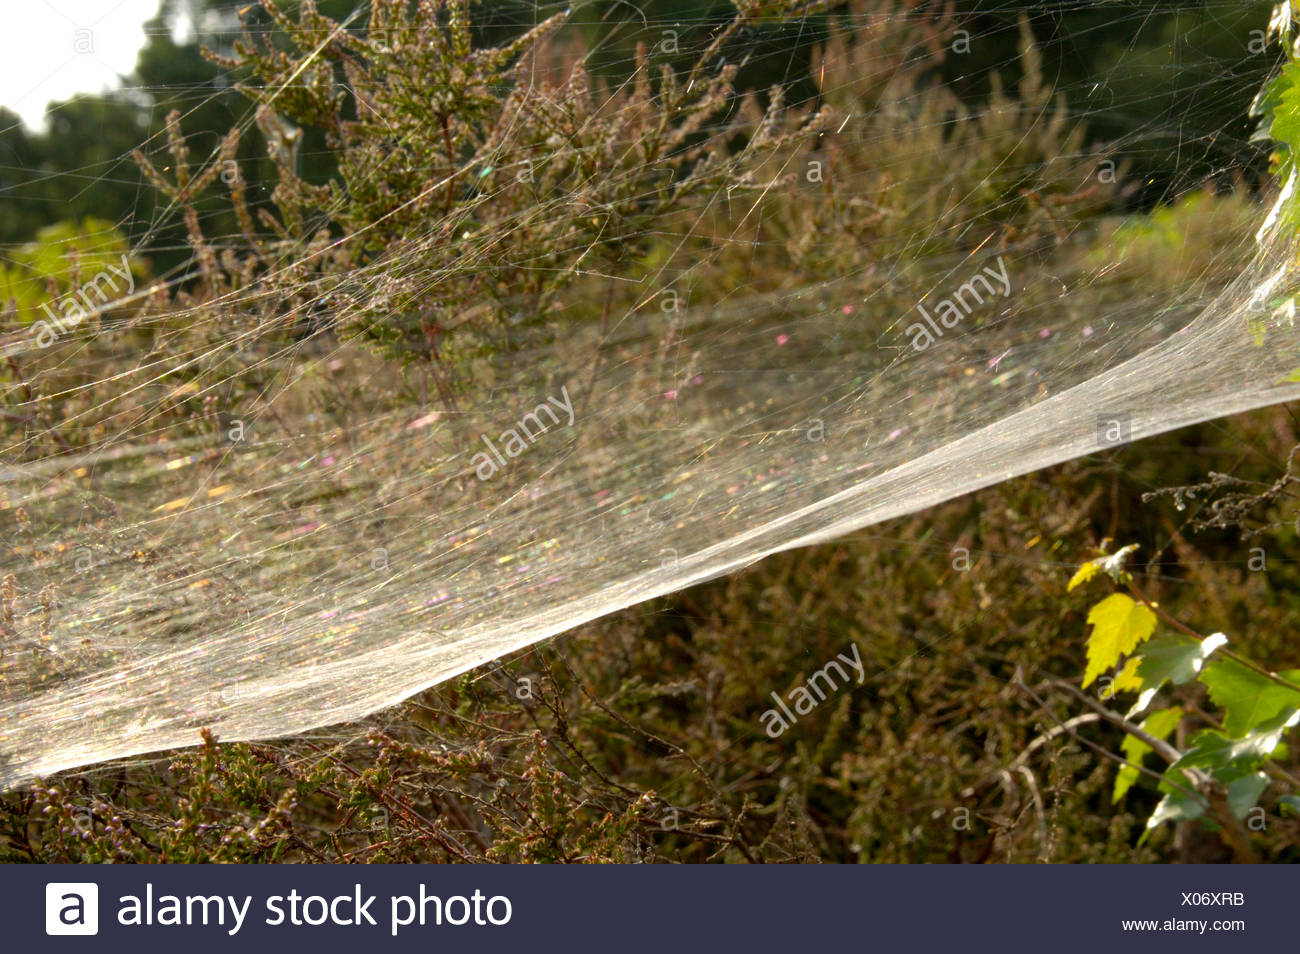 Spider's Web - Stock Image